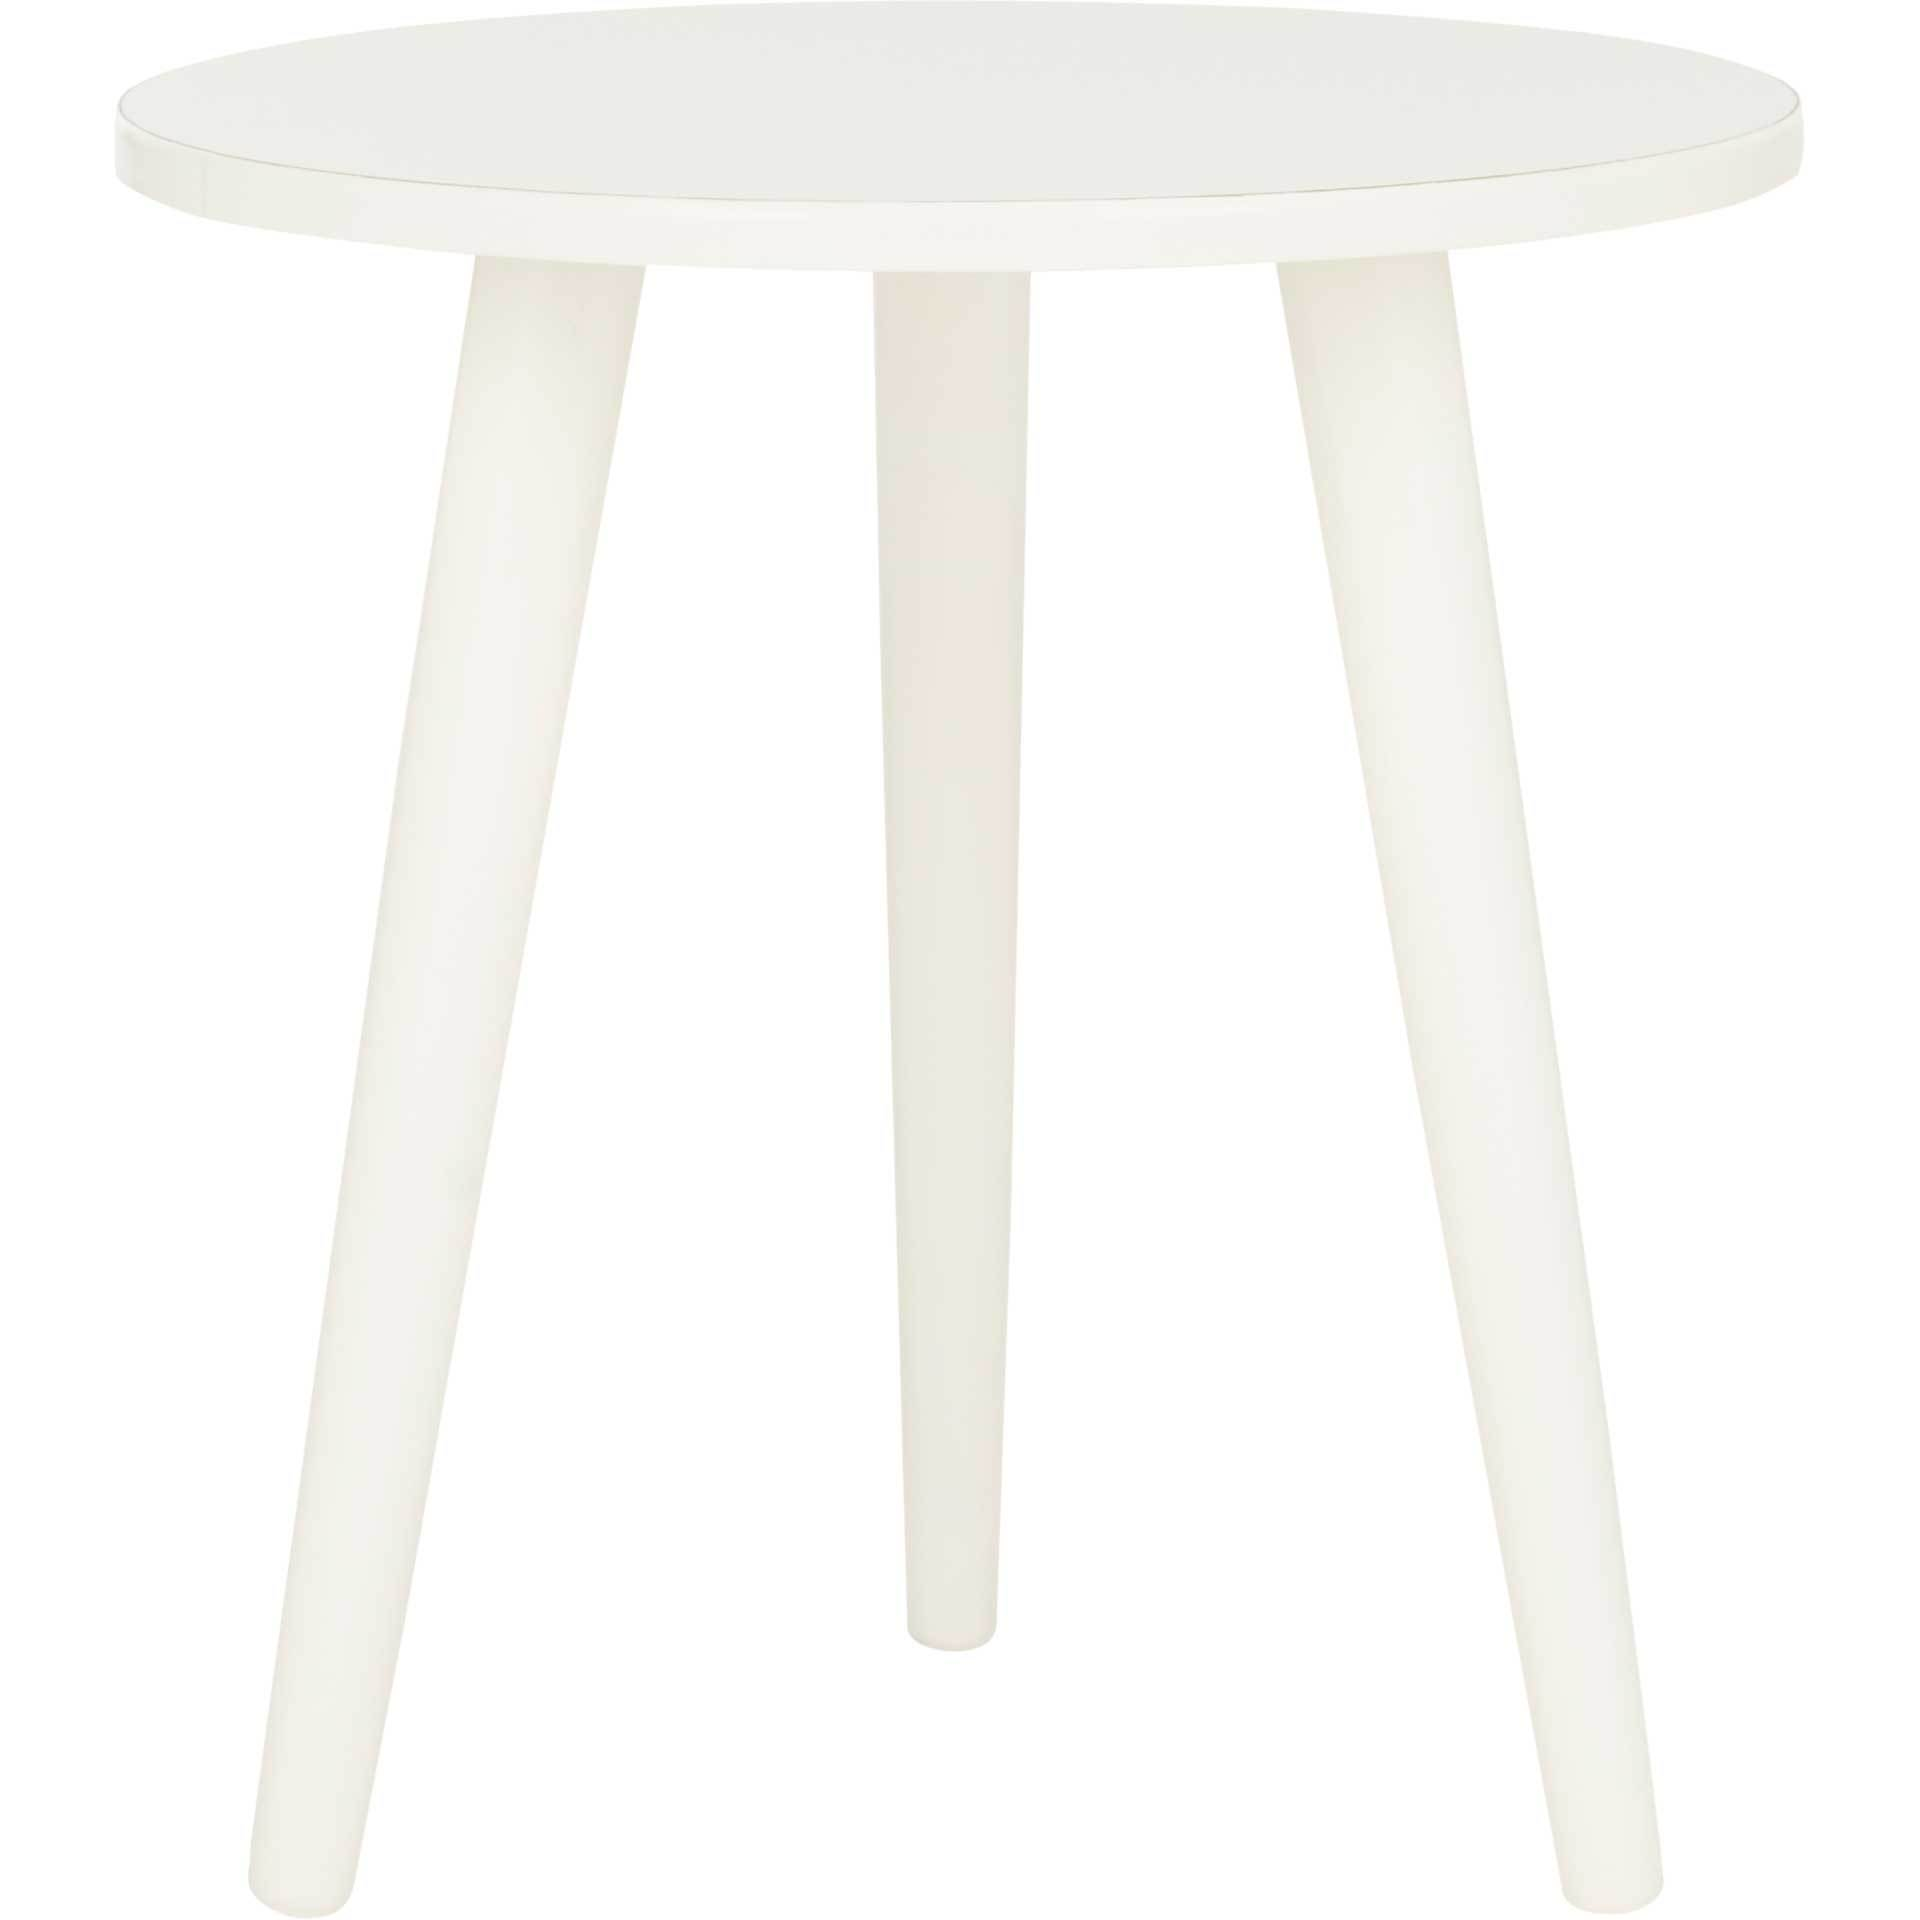 orion accent table distressed white froy front black round tablecloth amish tables espresso burgundy lamp shades rose gold desk patio and chairs side with arms for living room